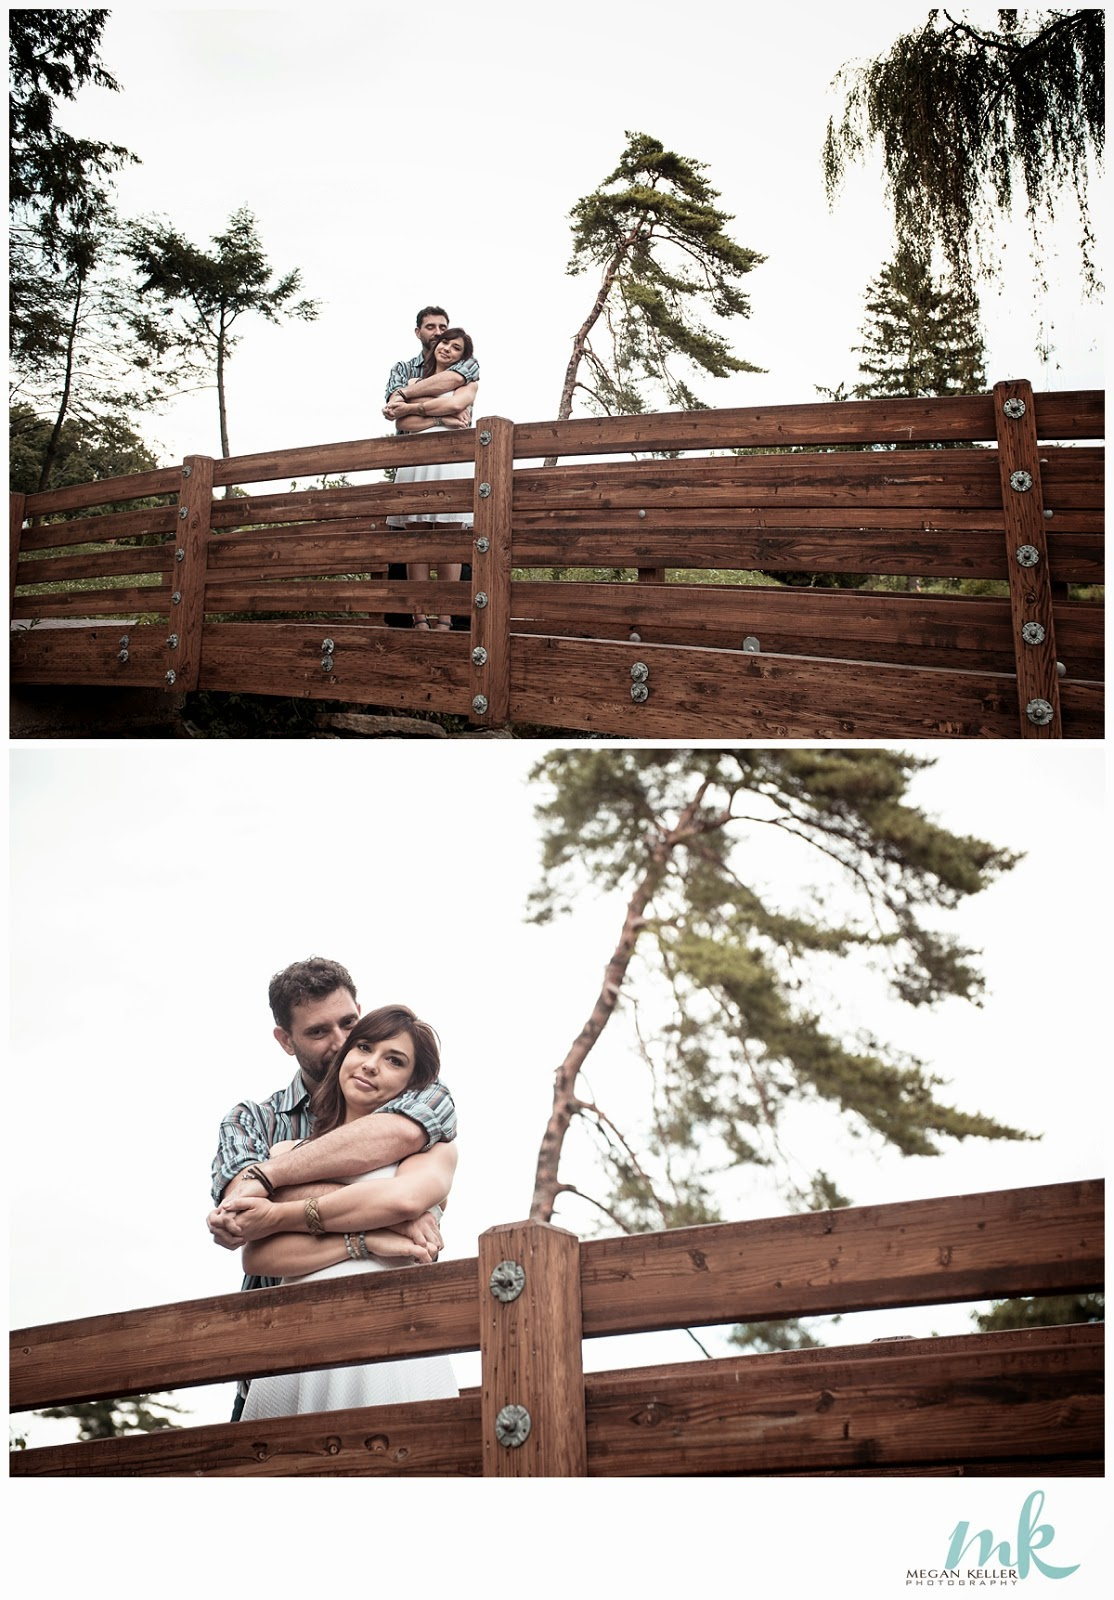 Lauren and Patrick Engagement Session Lauren and Patrick Engagement Session 2014 08 02 0015